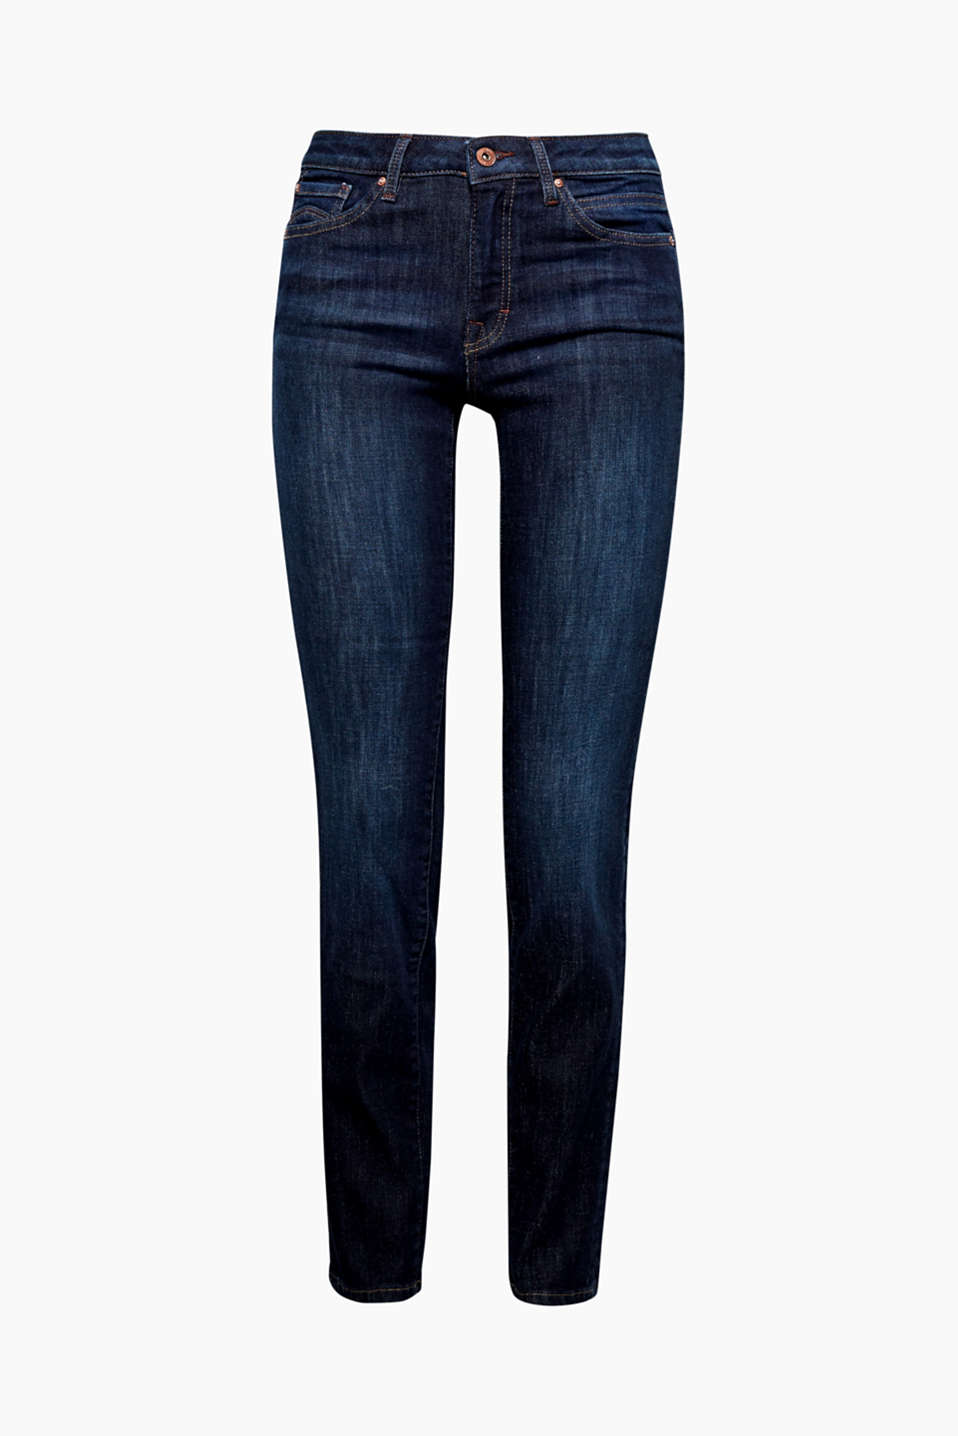 These dark blue stretch jeans with garment-washed effects and patch flap pockets is a cool classic.